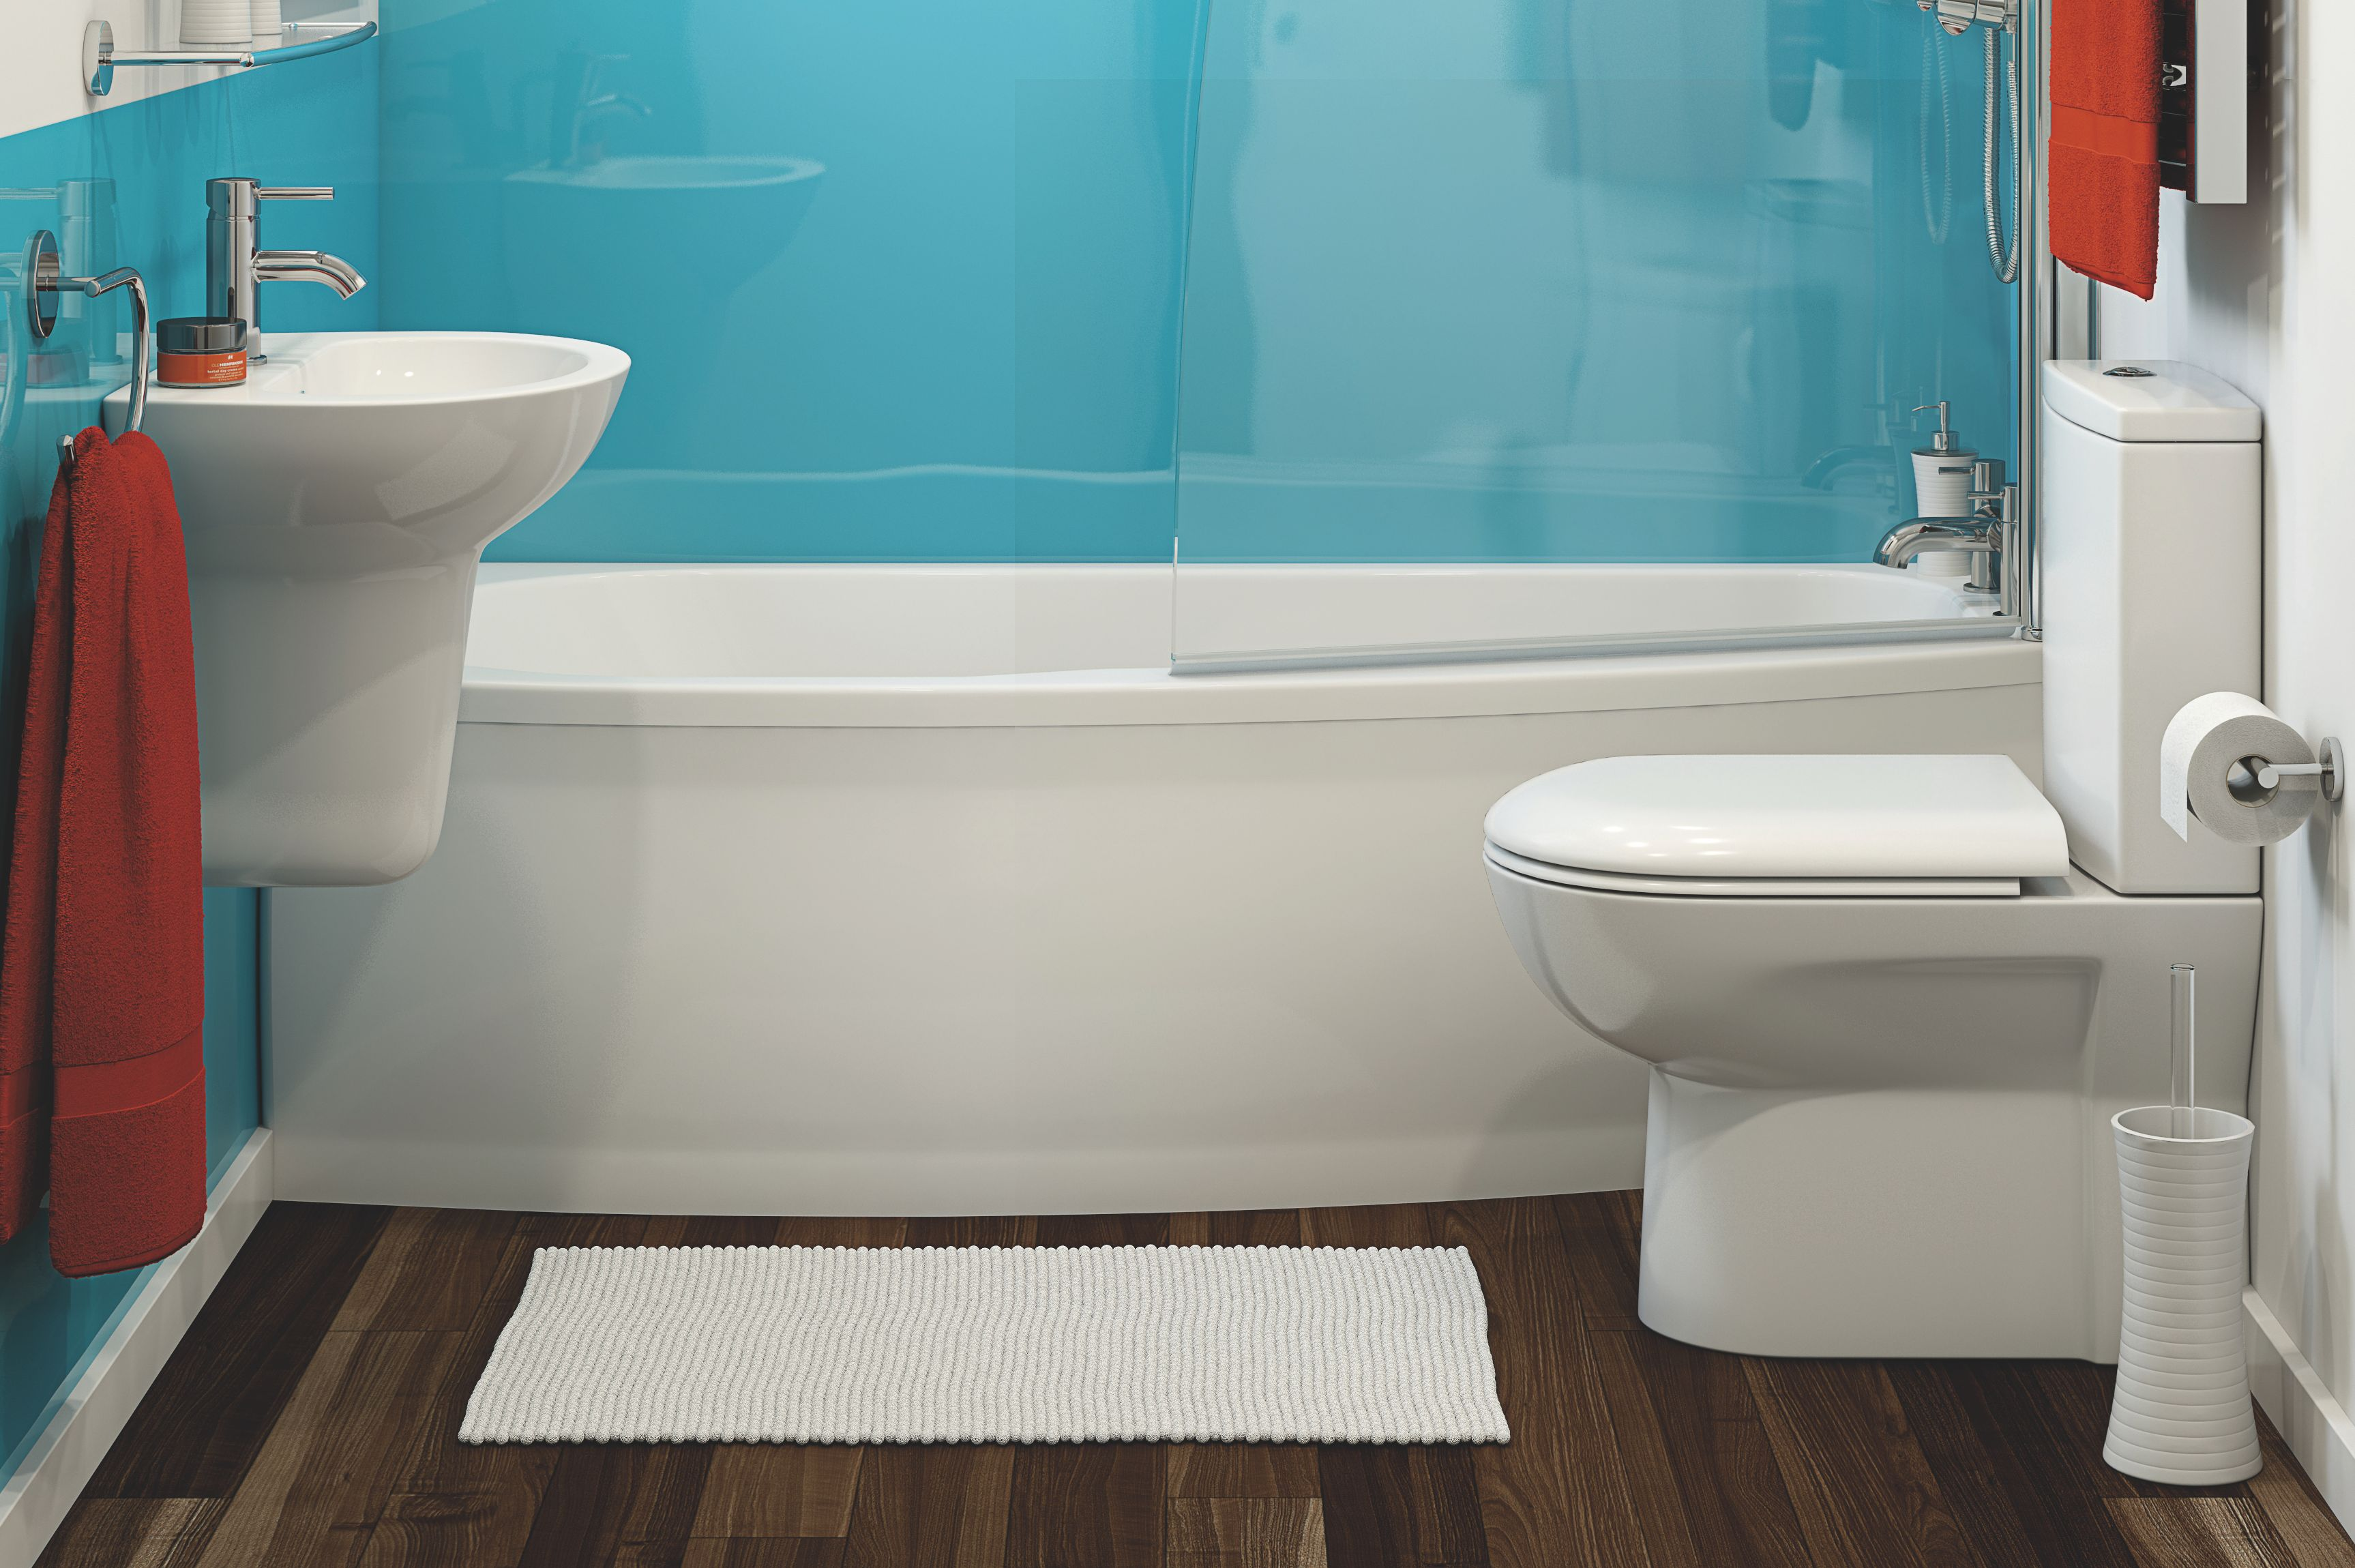 Rethinking the modern day bathroom an insightful look at for Bathroom styles images